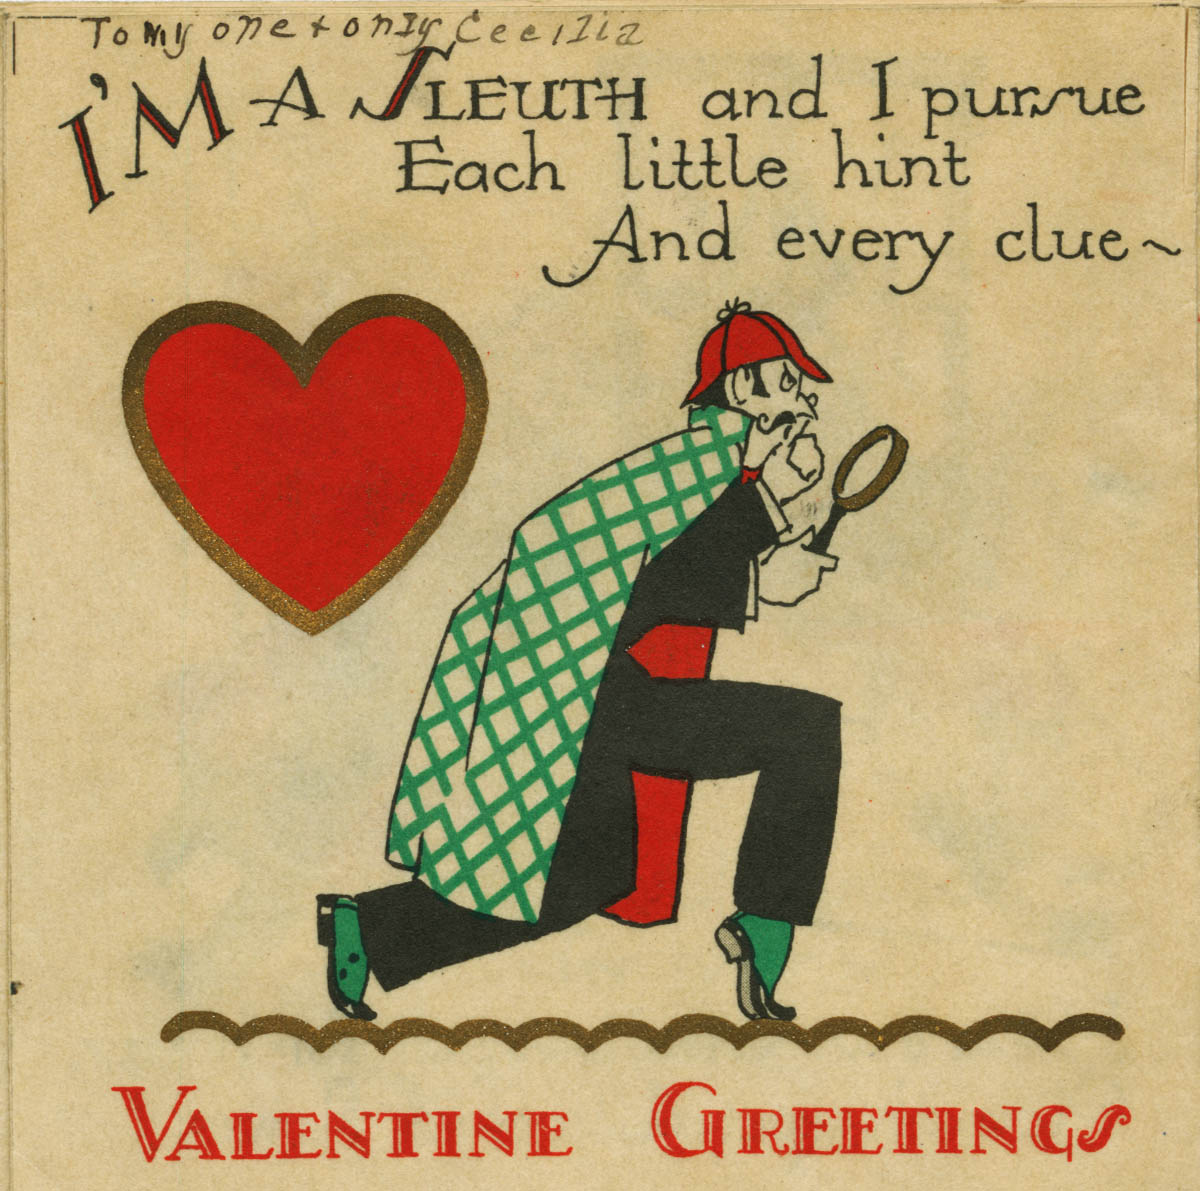 "Cover of Valentine greeting card that features a cartoon of a detective and reads: I'm a sleuth and I pursue / each little hint and every clue -"", Valentine Greetings. Inscription at top reads ""to my one + only Cecilia"""